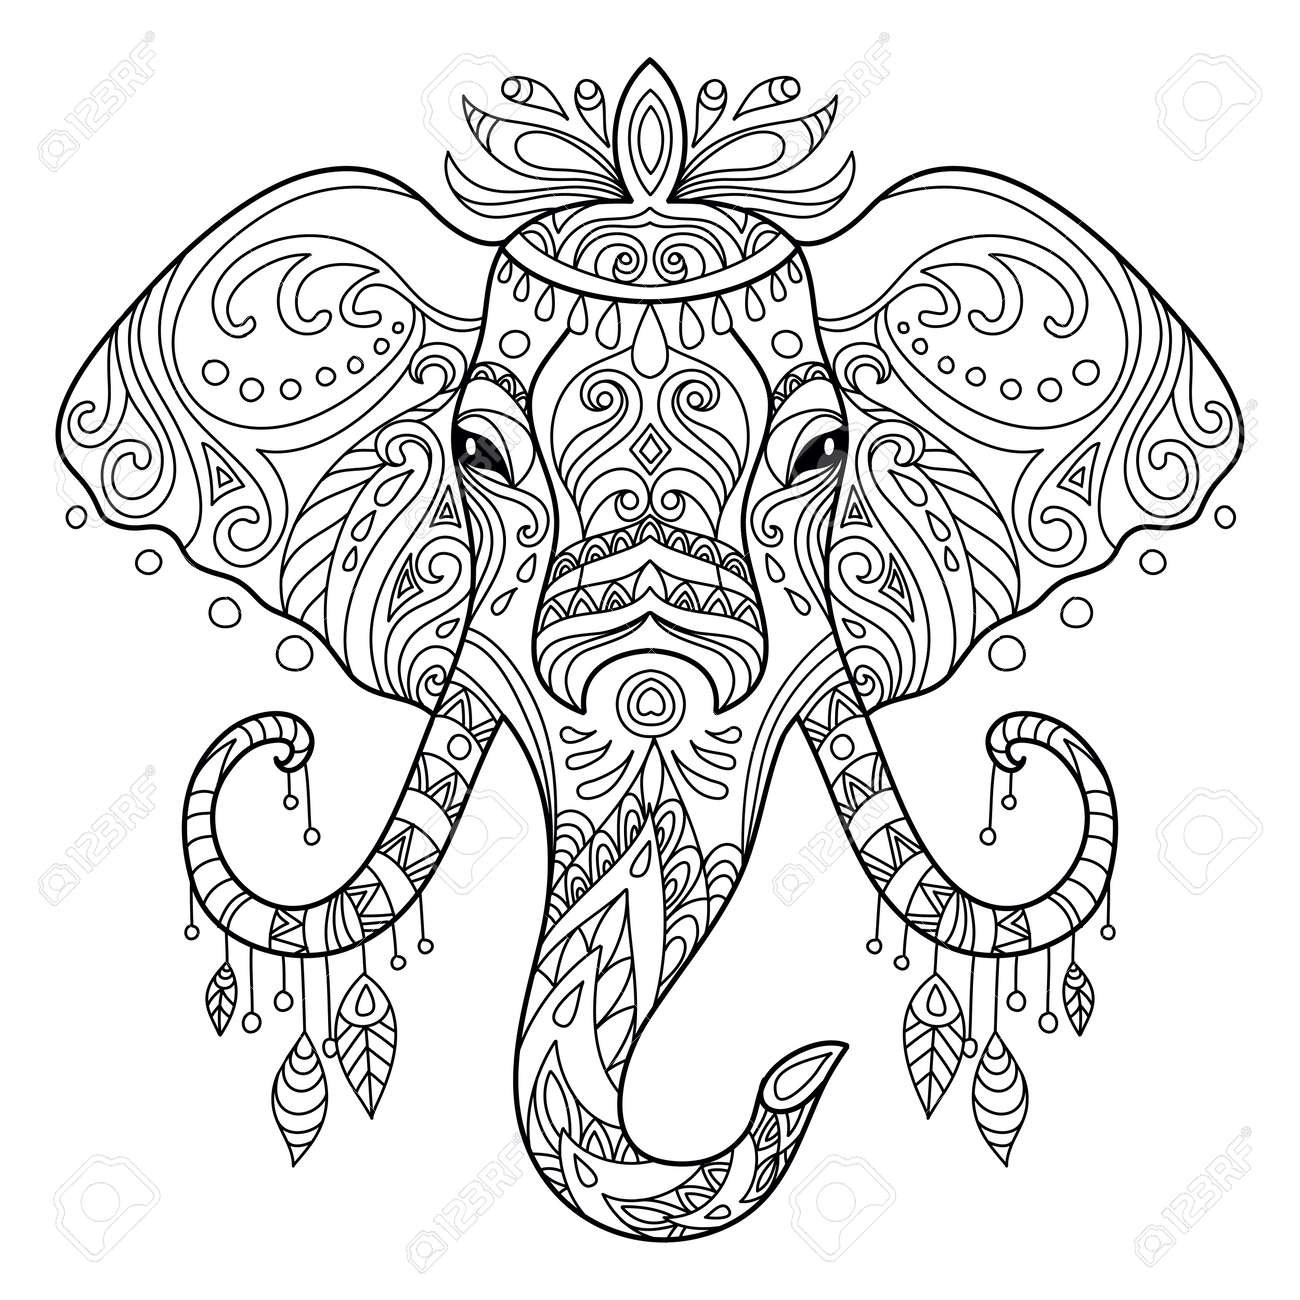 Tangle african elephant coloring book page for adult - 167906013